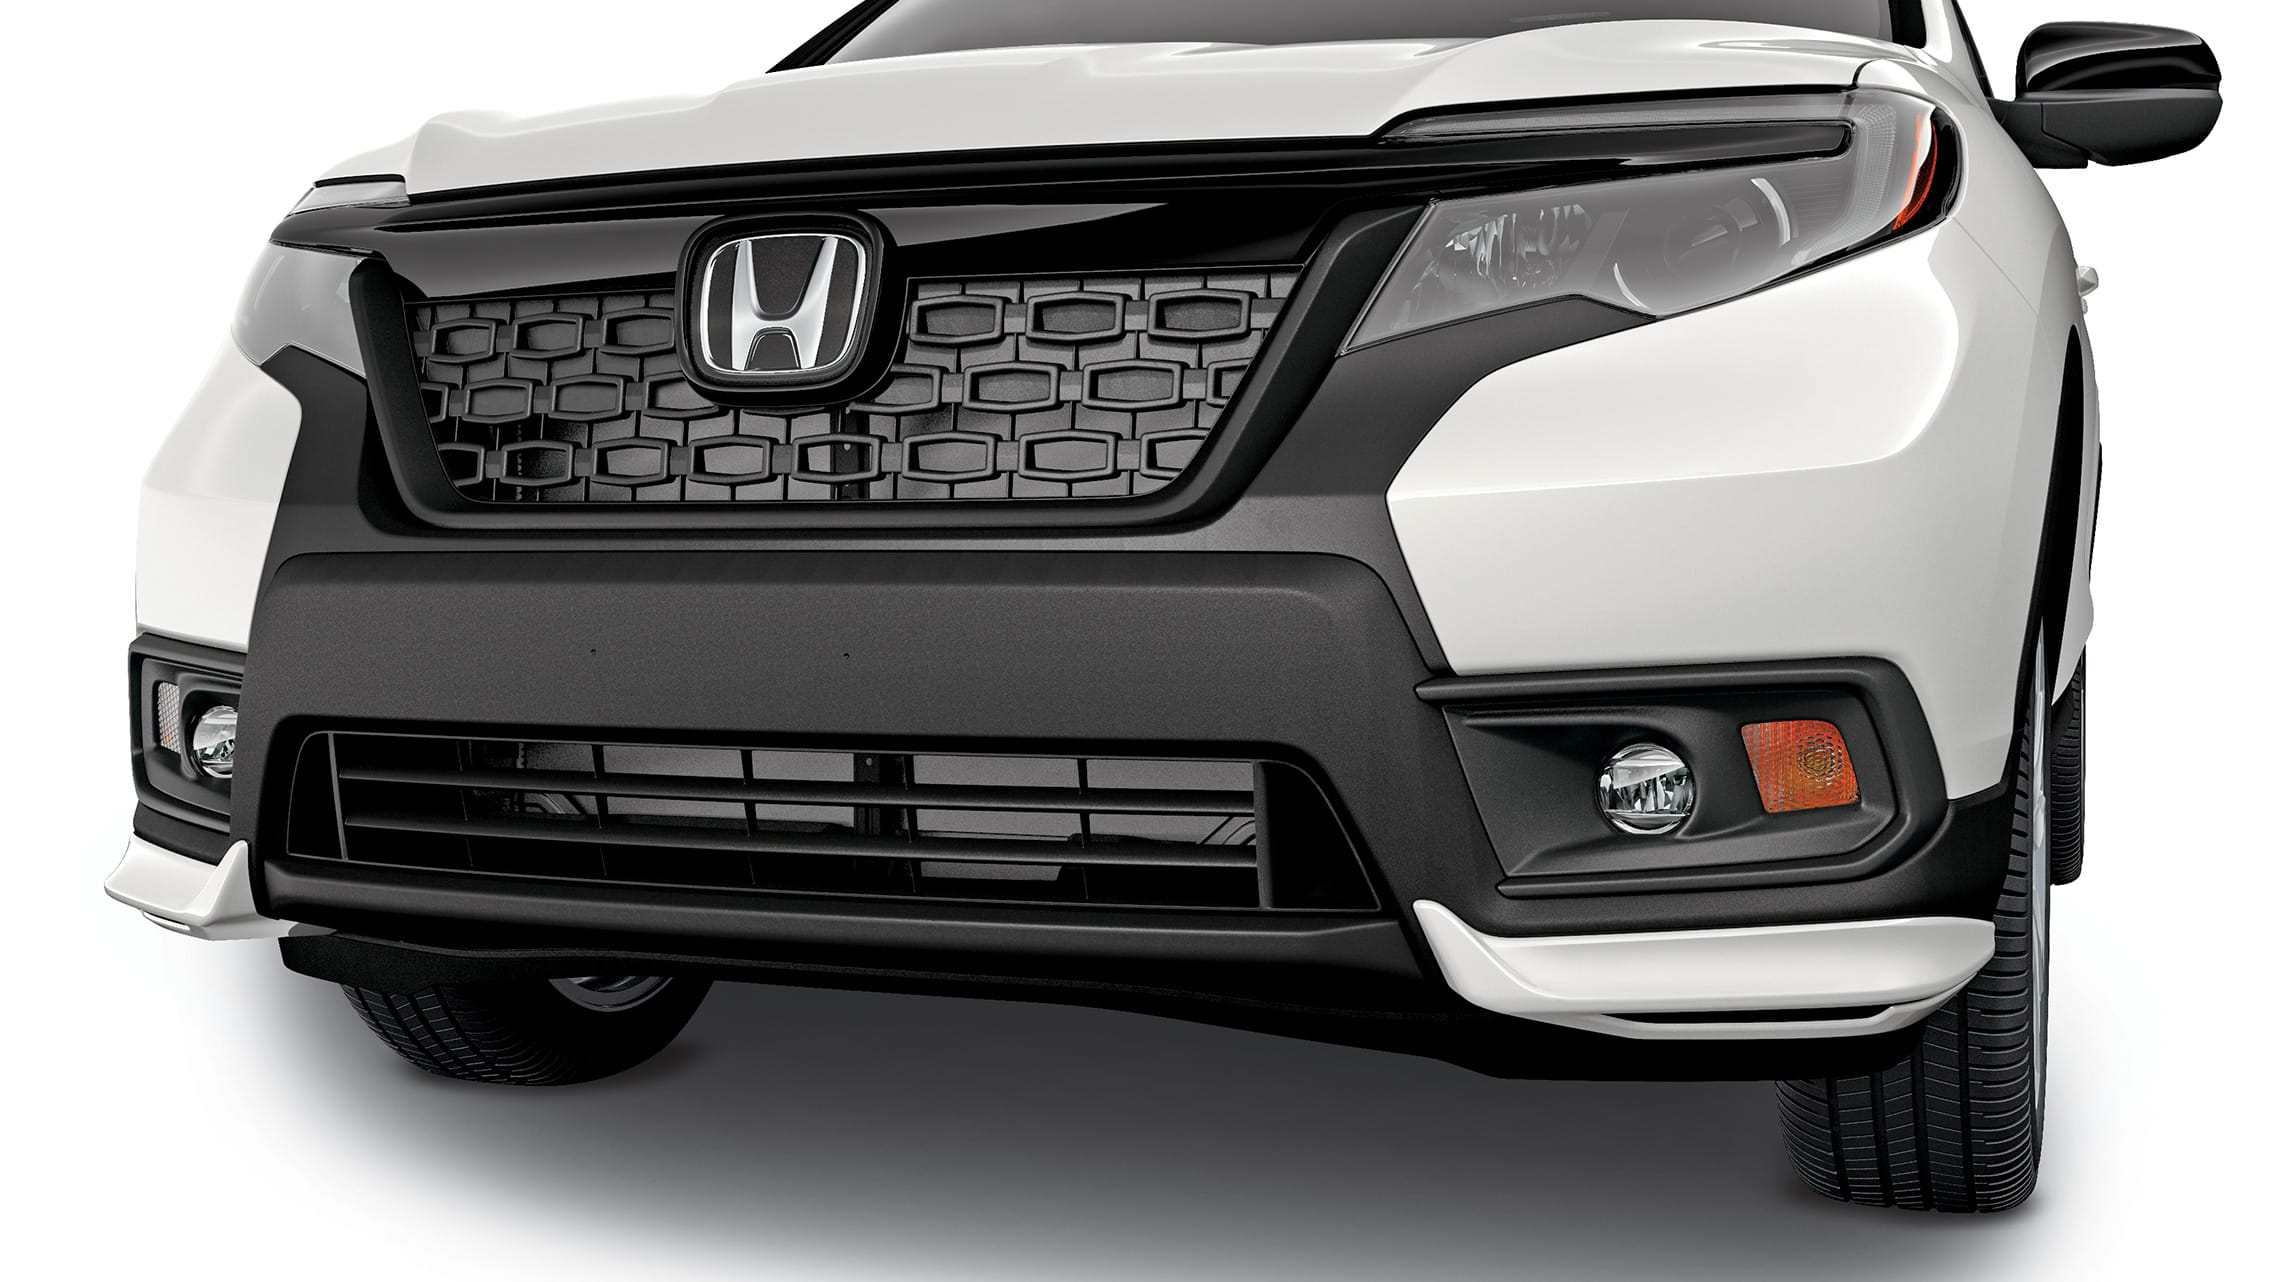 Detail of accessory front underbody spoiler on the 2019 Honda Passport.